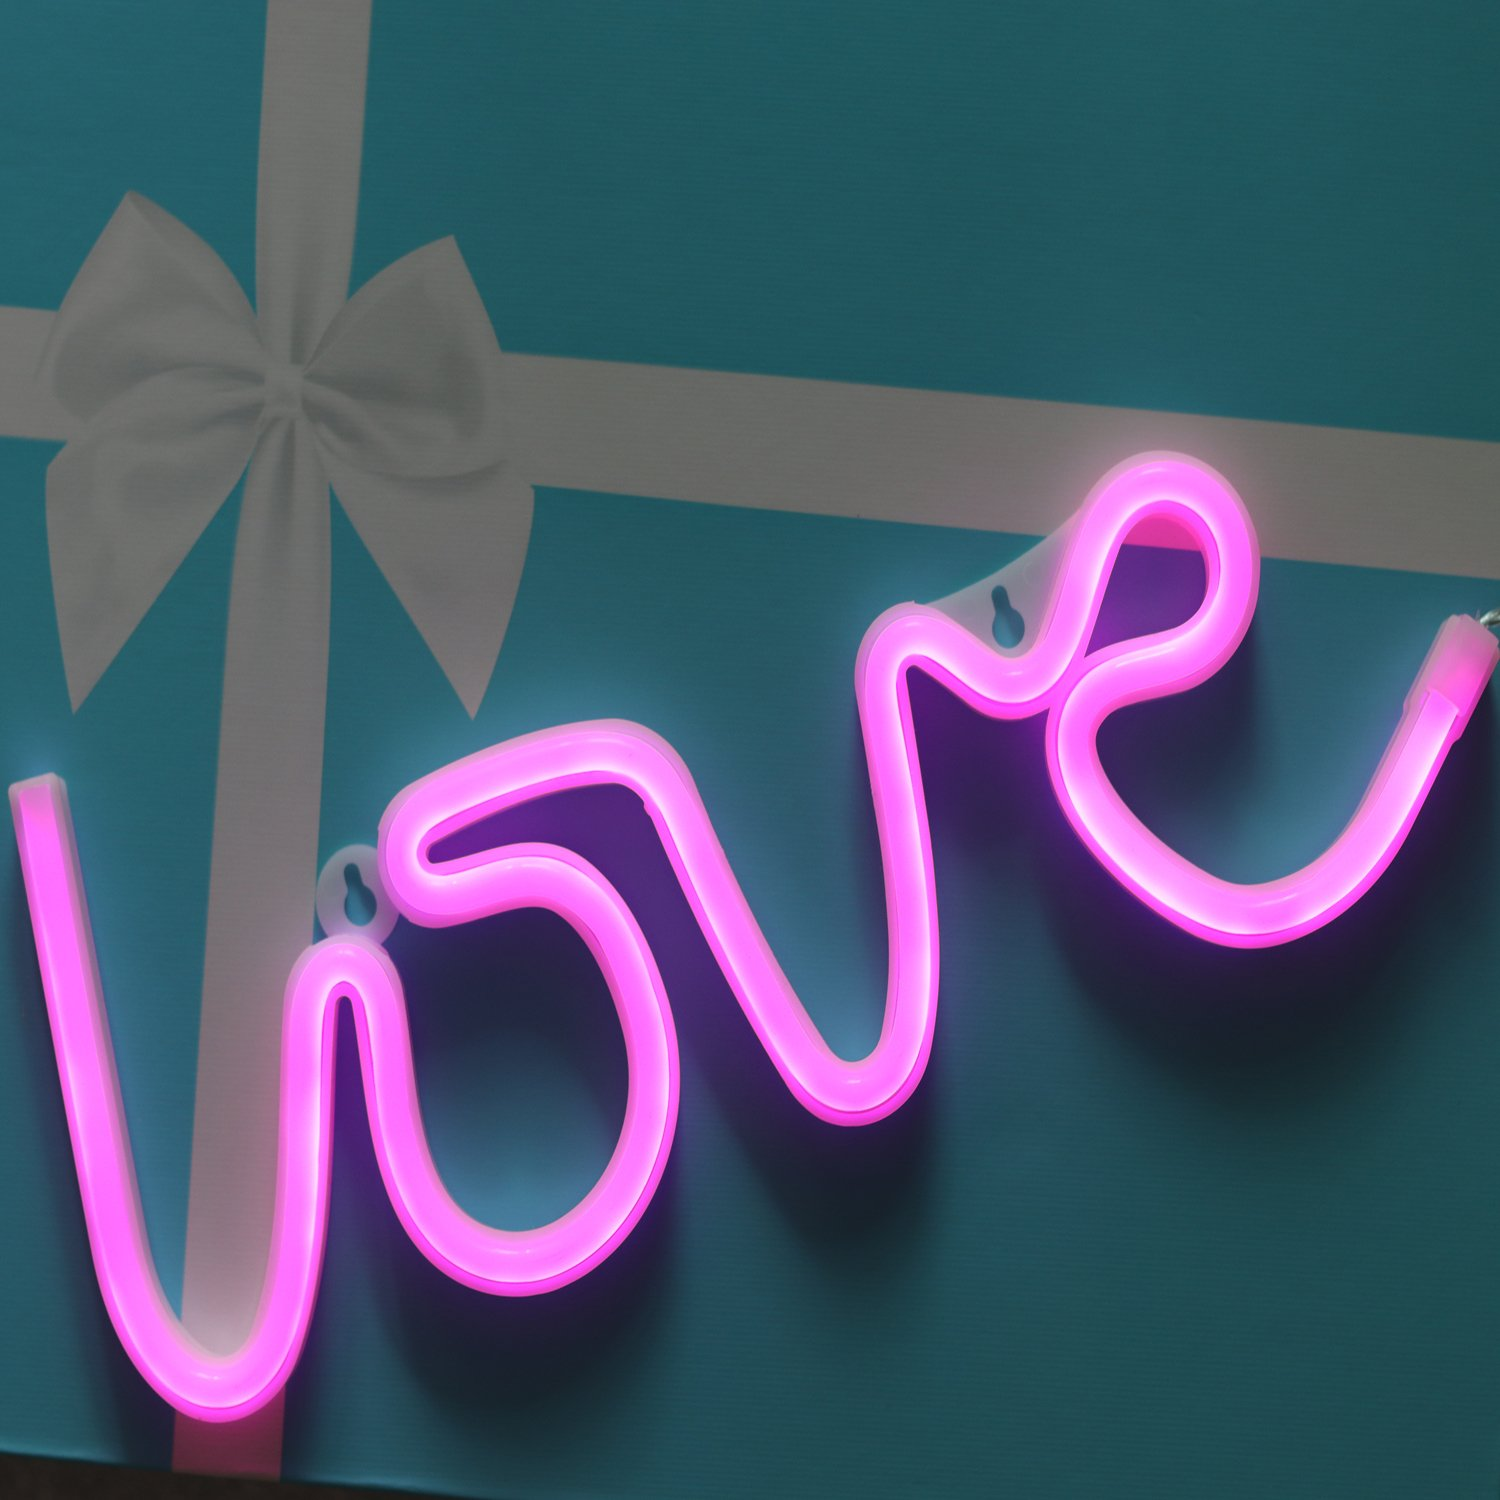 Neon Signs Love Letters Pink LED Decorative Night Light for Bedroom Wall décor Light for Wedding Valentine's day Pub Battery Operated and USB Powered Neon Light(NELOV) by VagaryLight (Image #3)